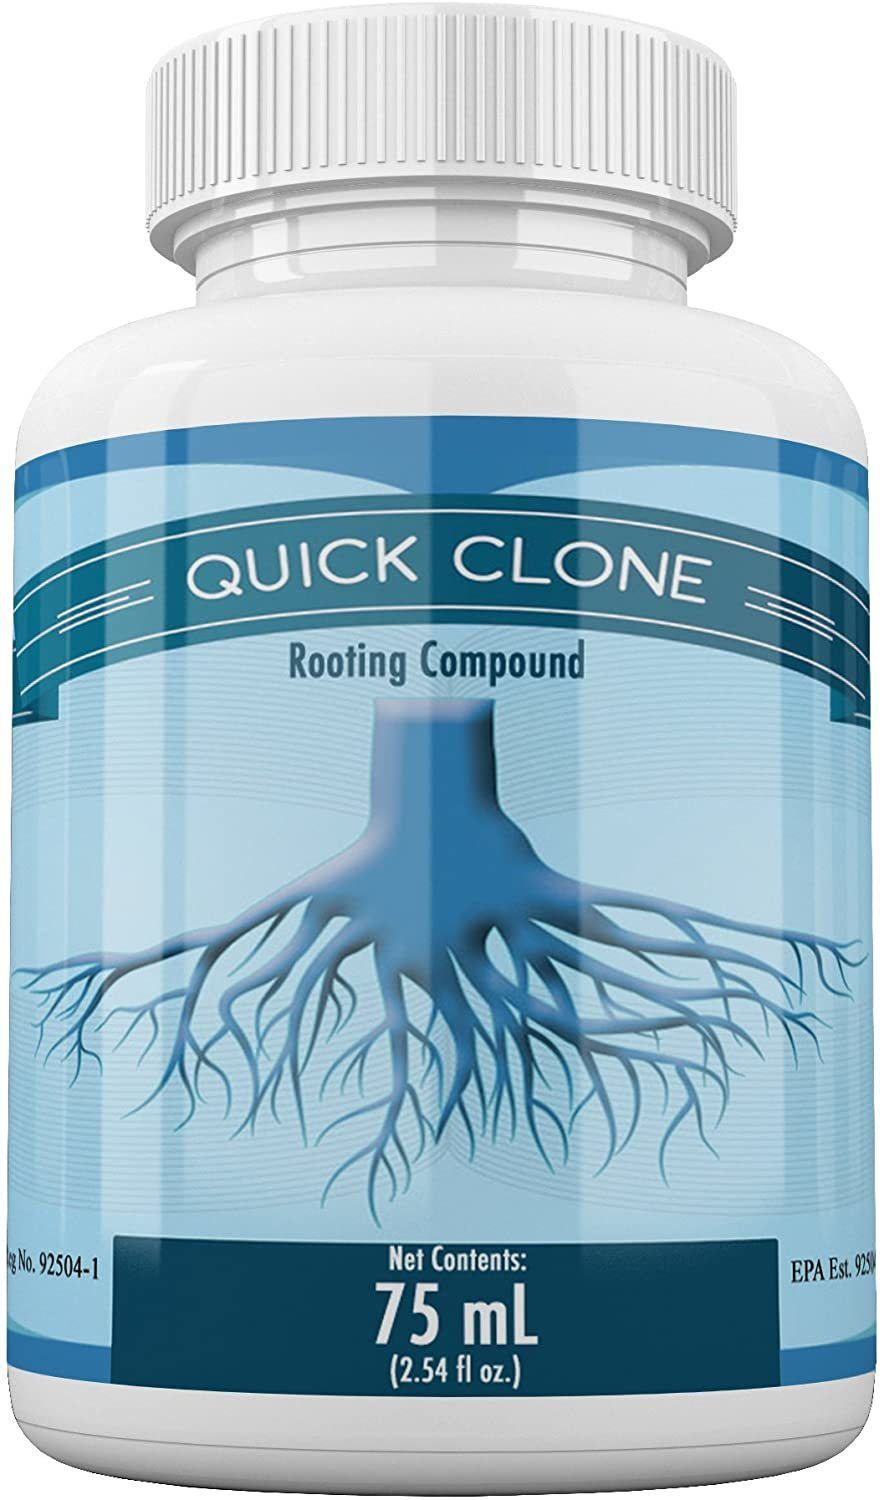 Quick Clone Gel is one of the best rooting hormone in the market today